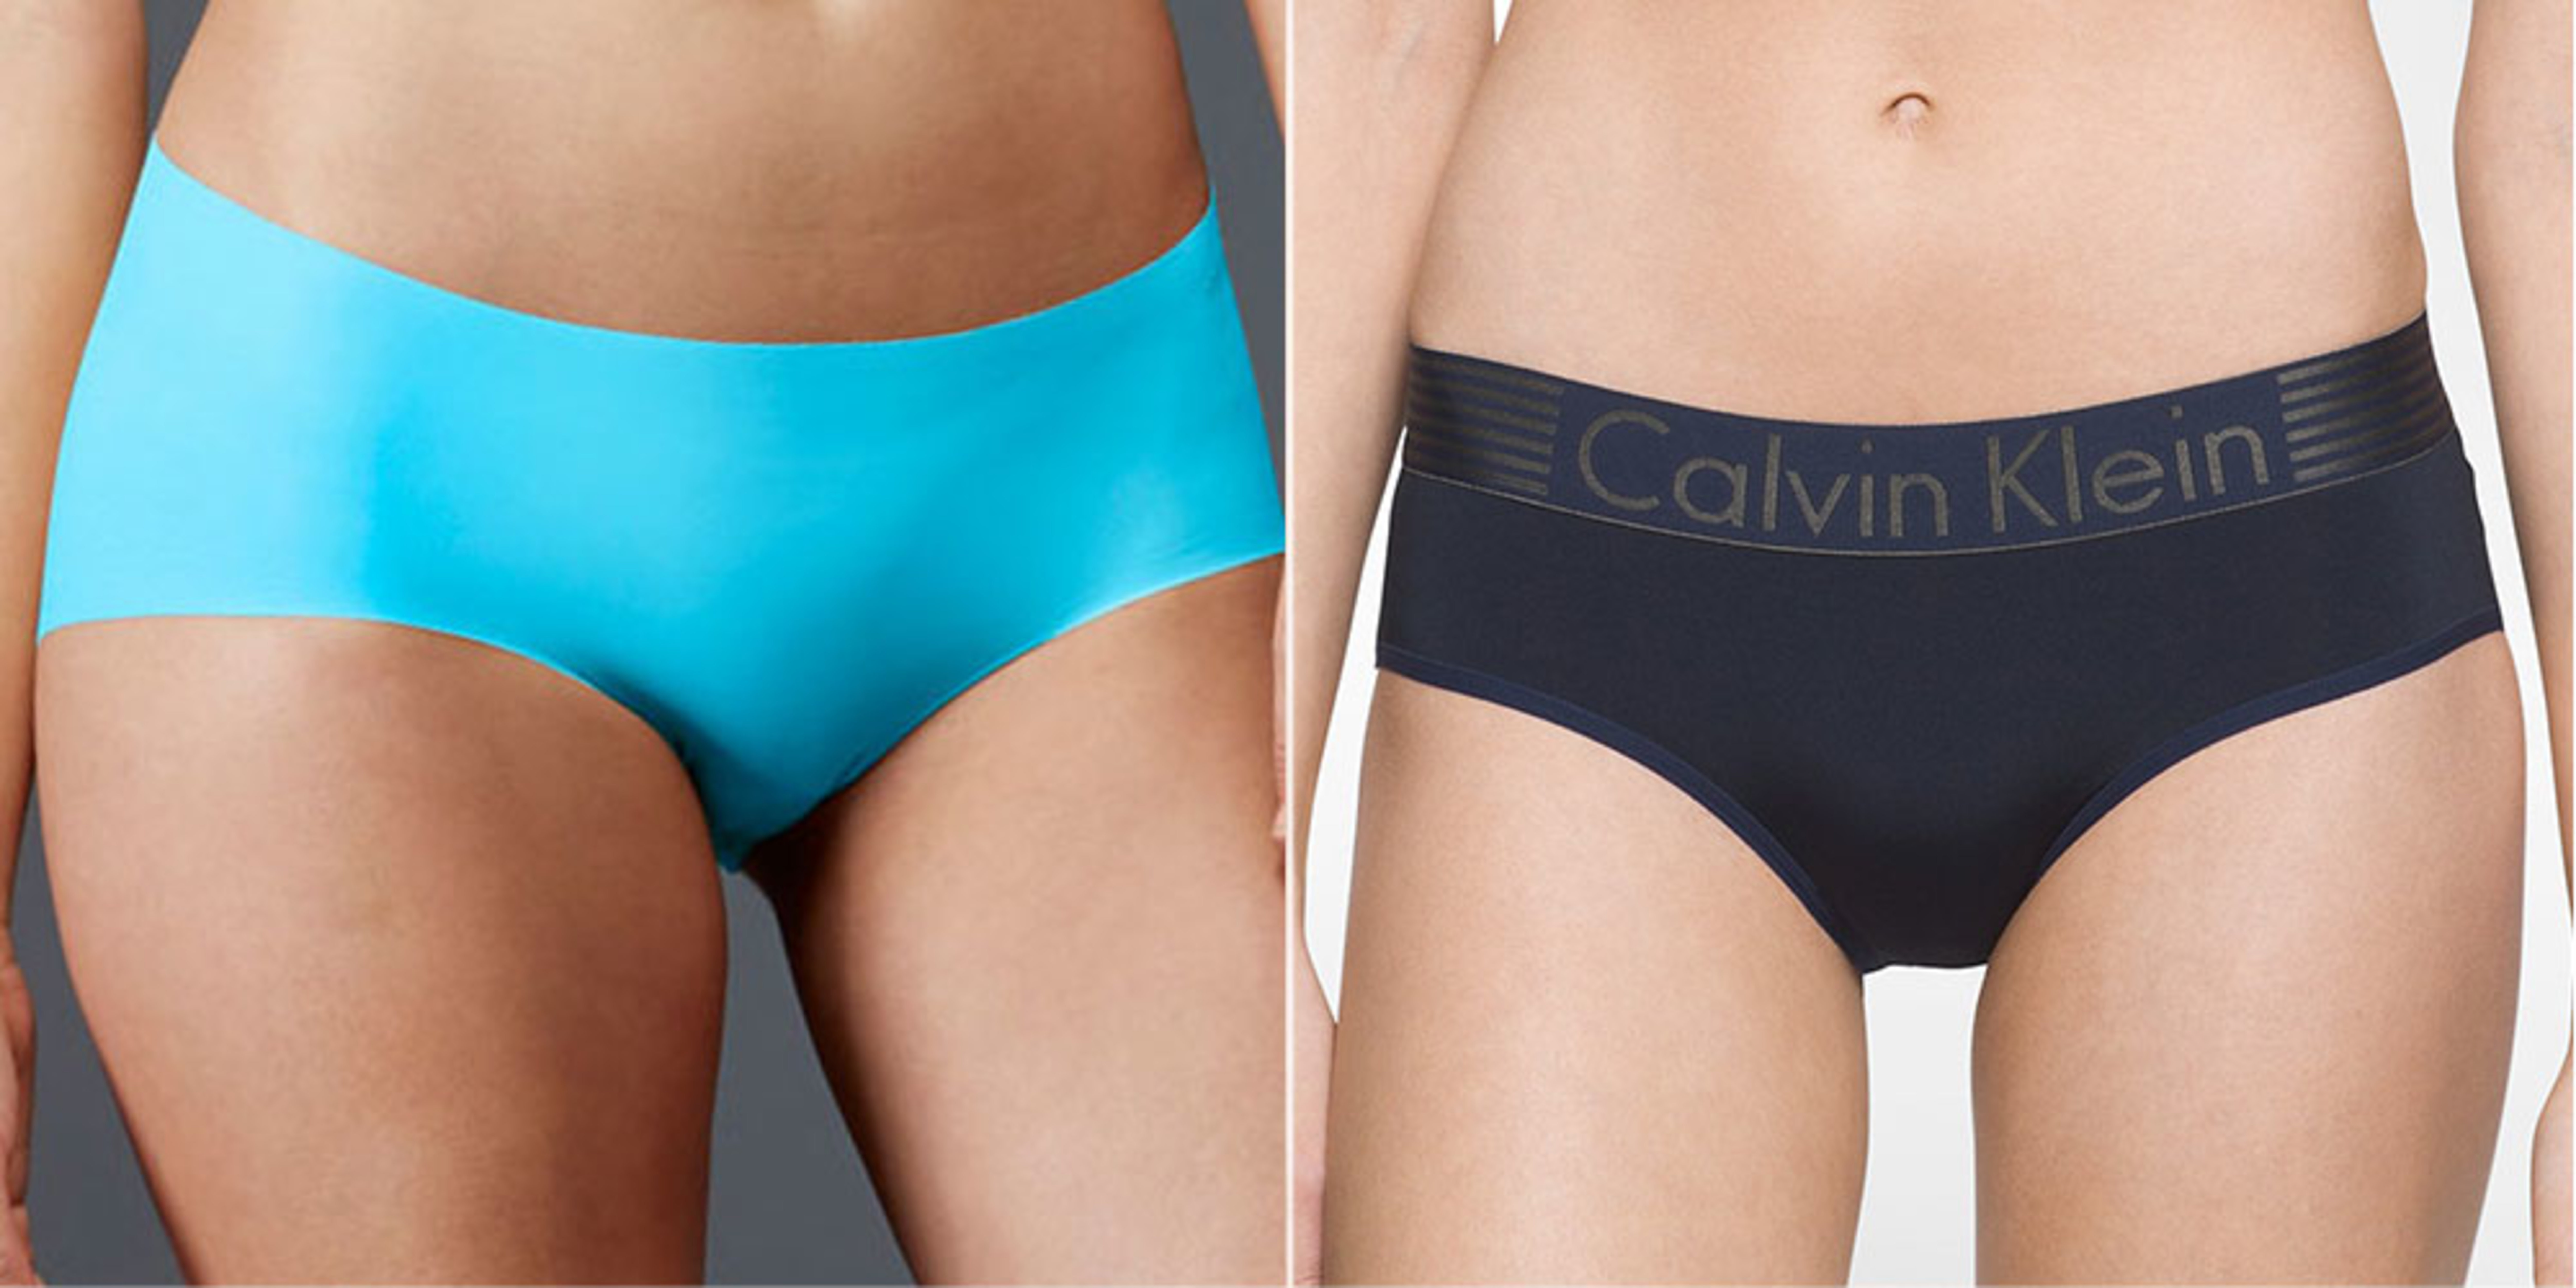 The Best Workout Underwear for Women Andrea Cespedes - Updated August 25, Underwear that rides, bunches or grips in all the wrong places can ruin a workout.